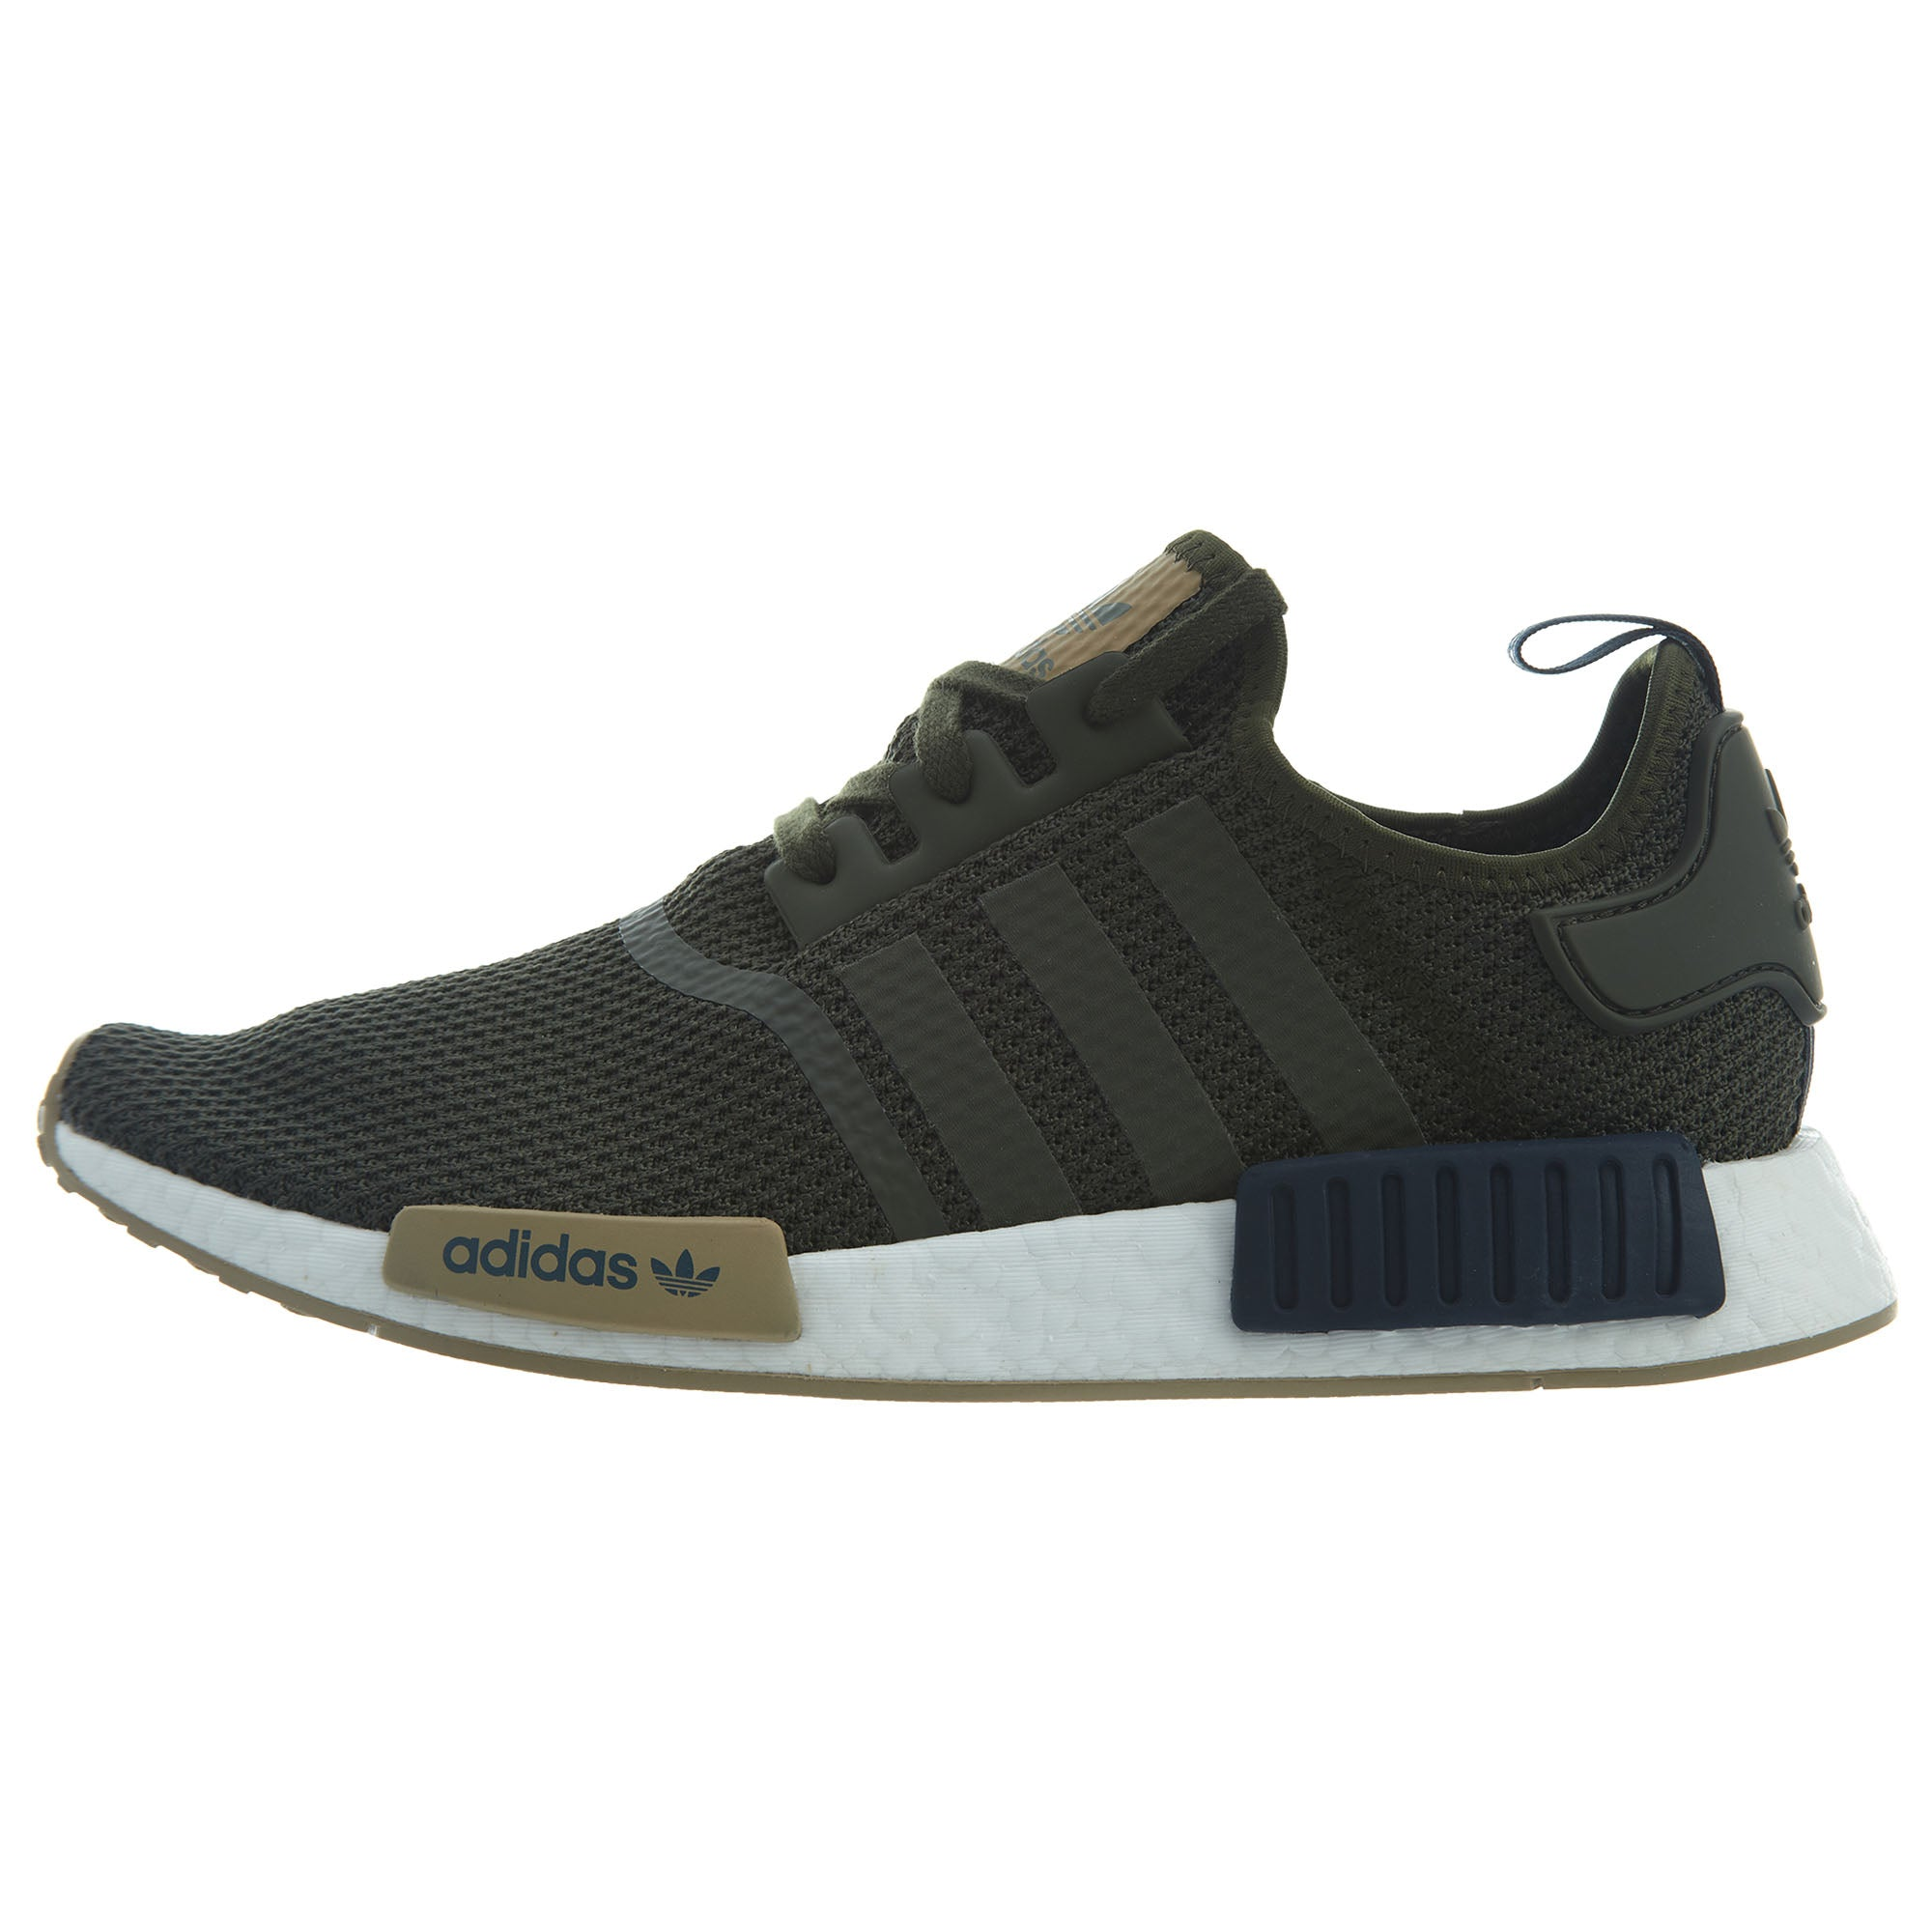 a6080223920c0 Adidas Nmd r1 Mens Style   F97174-Night Cargo – TheEagleShoes